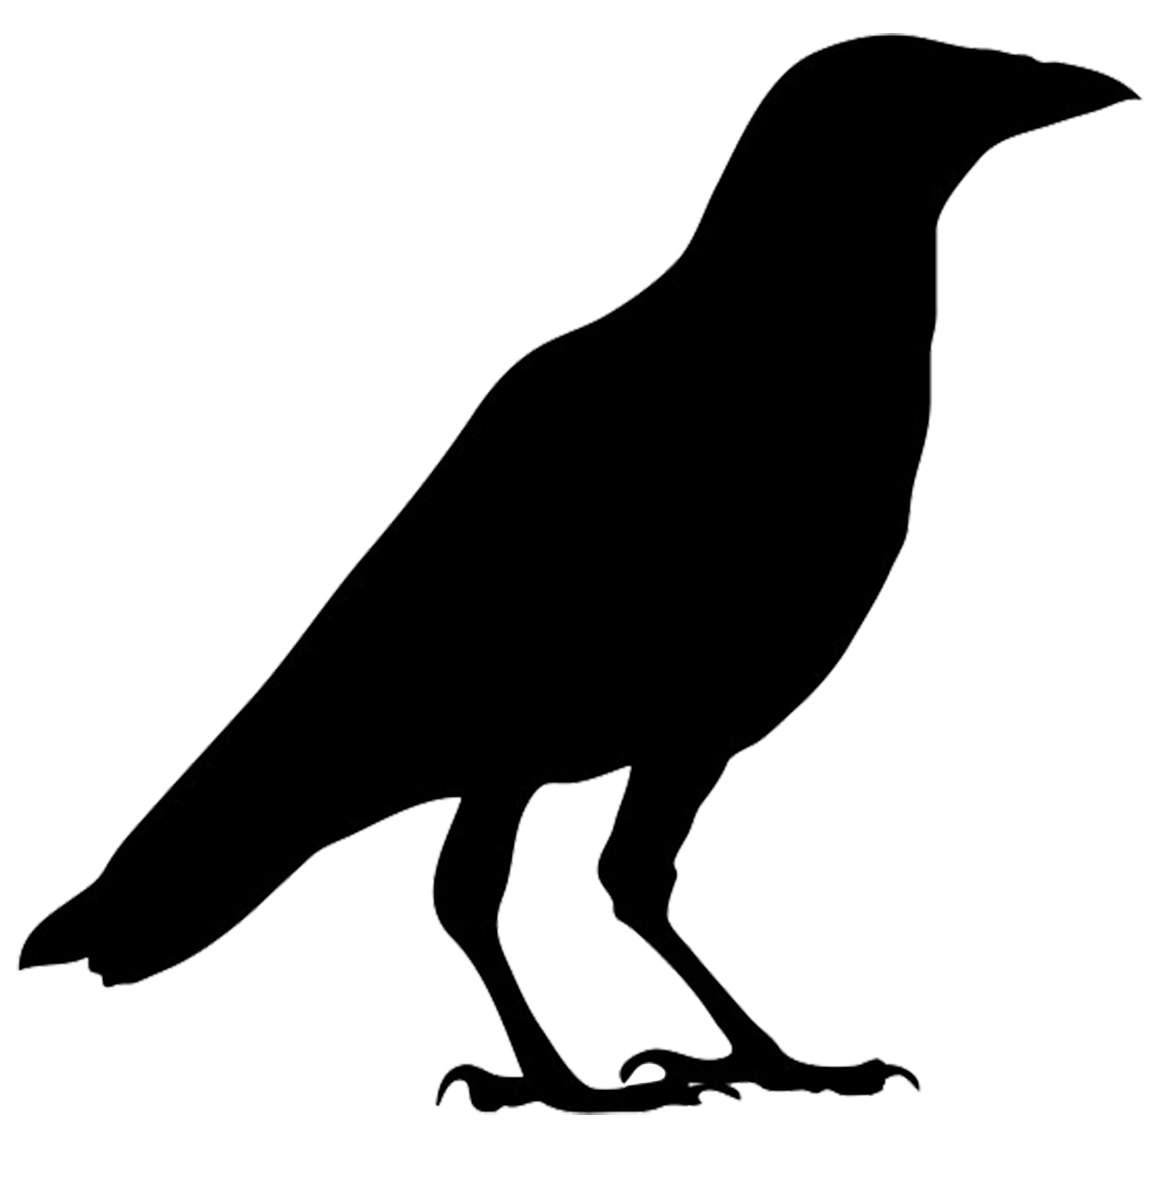 Flying Crow Silhouette Clipart - Clipart Kid